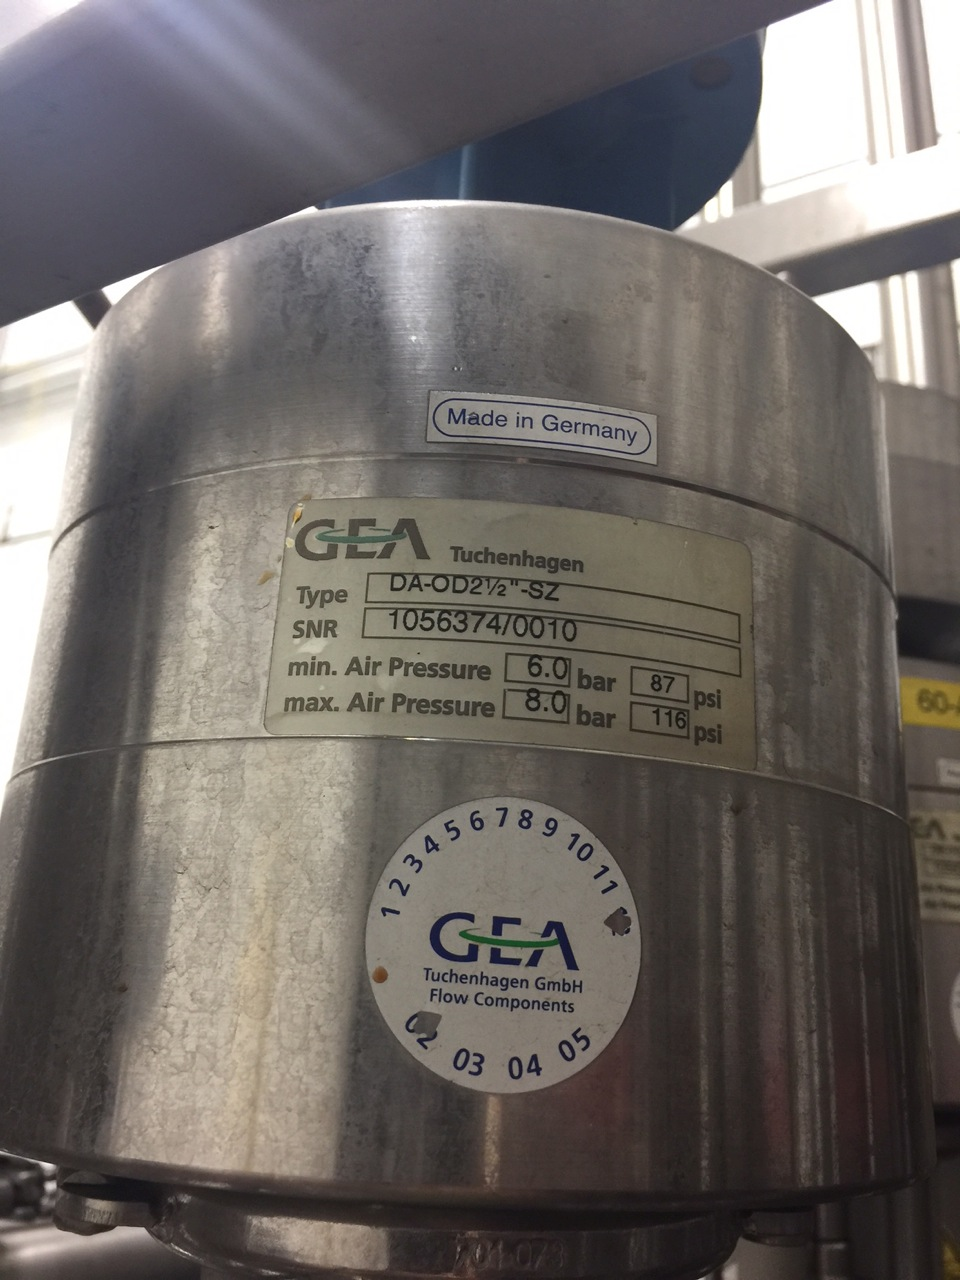 Stainless Steel CIP Manifold with GEA Valves | Rigging Price: $100 - Image 4 of 6